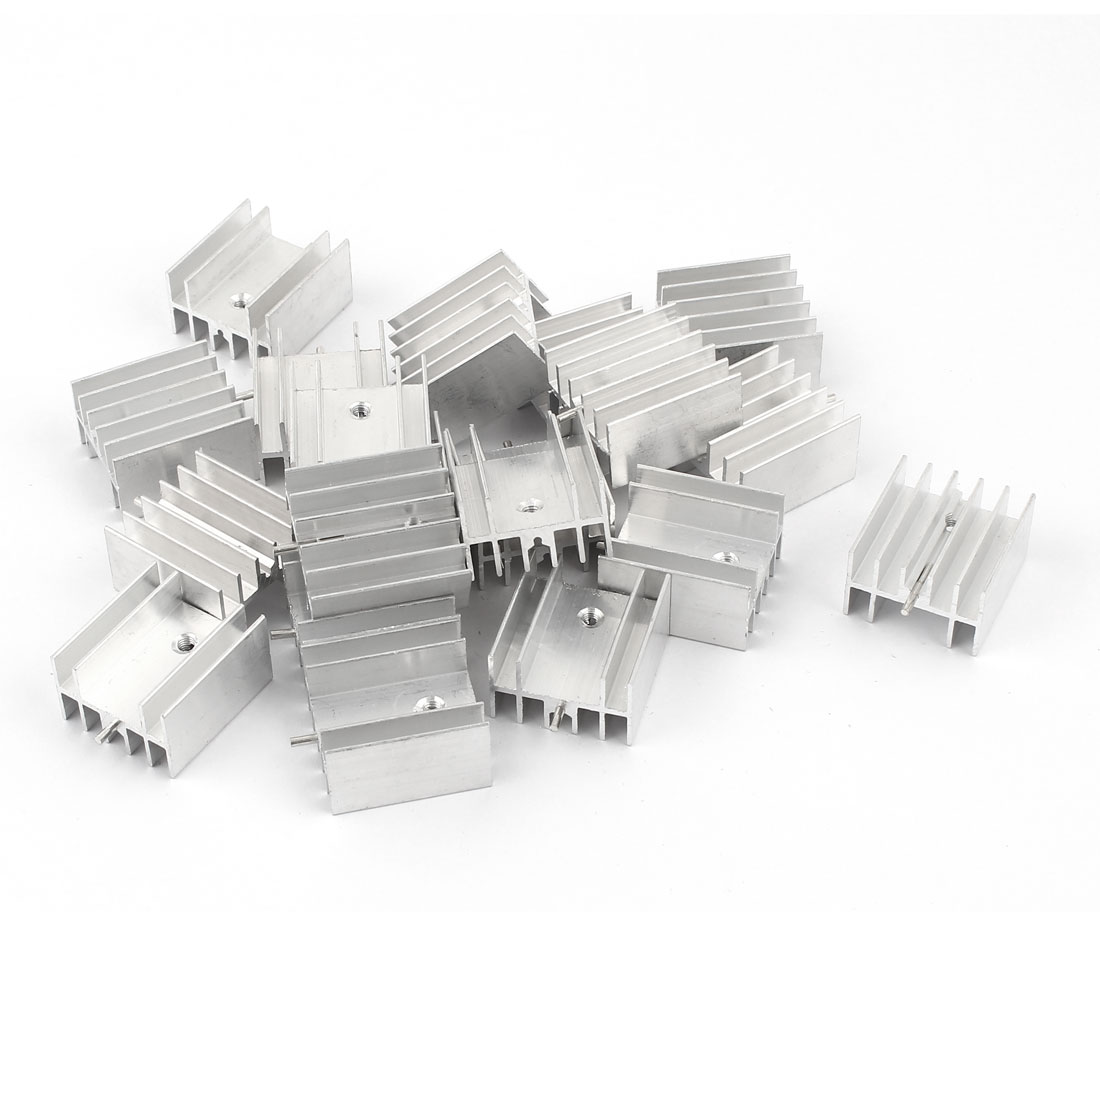 20 Pcs Aluminum Heatsinks Radiator + Needle 25x23x16mm Silver Tone for Mosfet IC